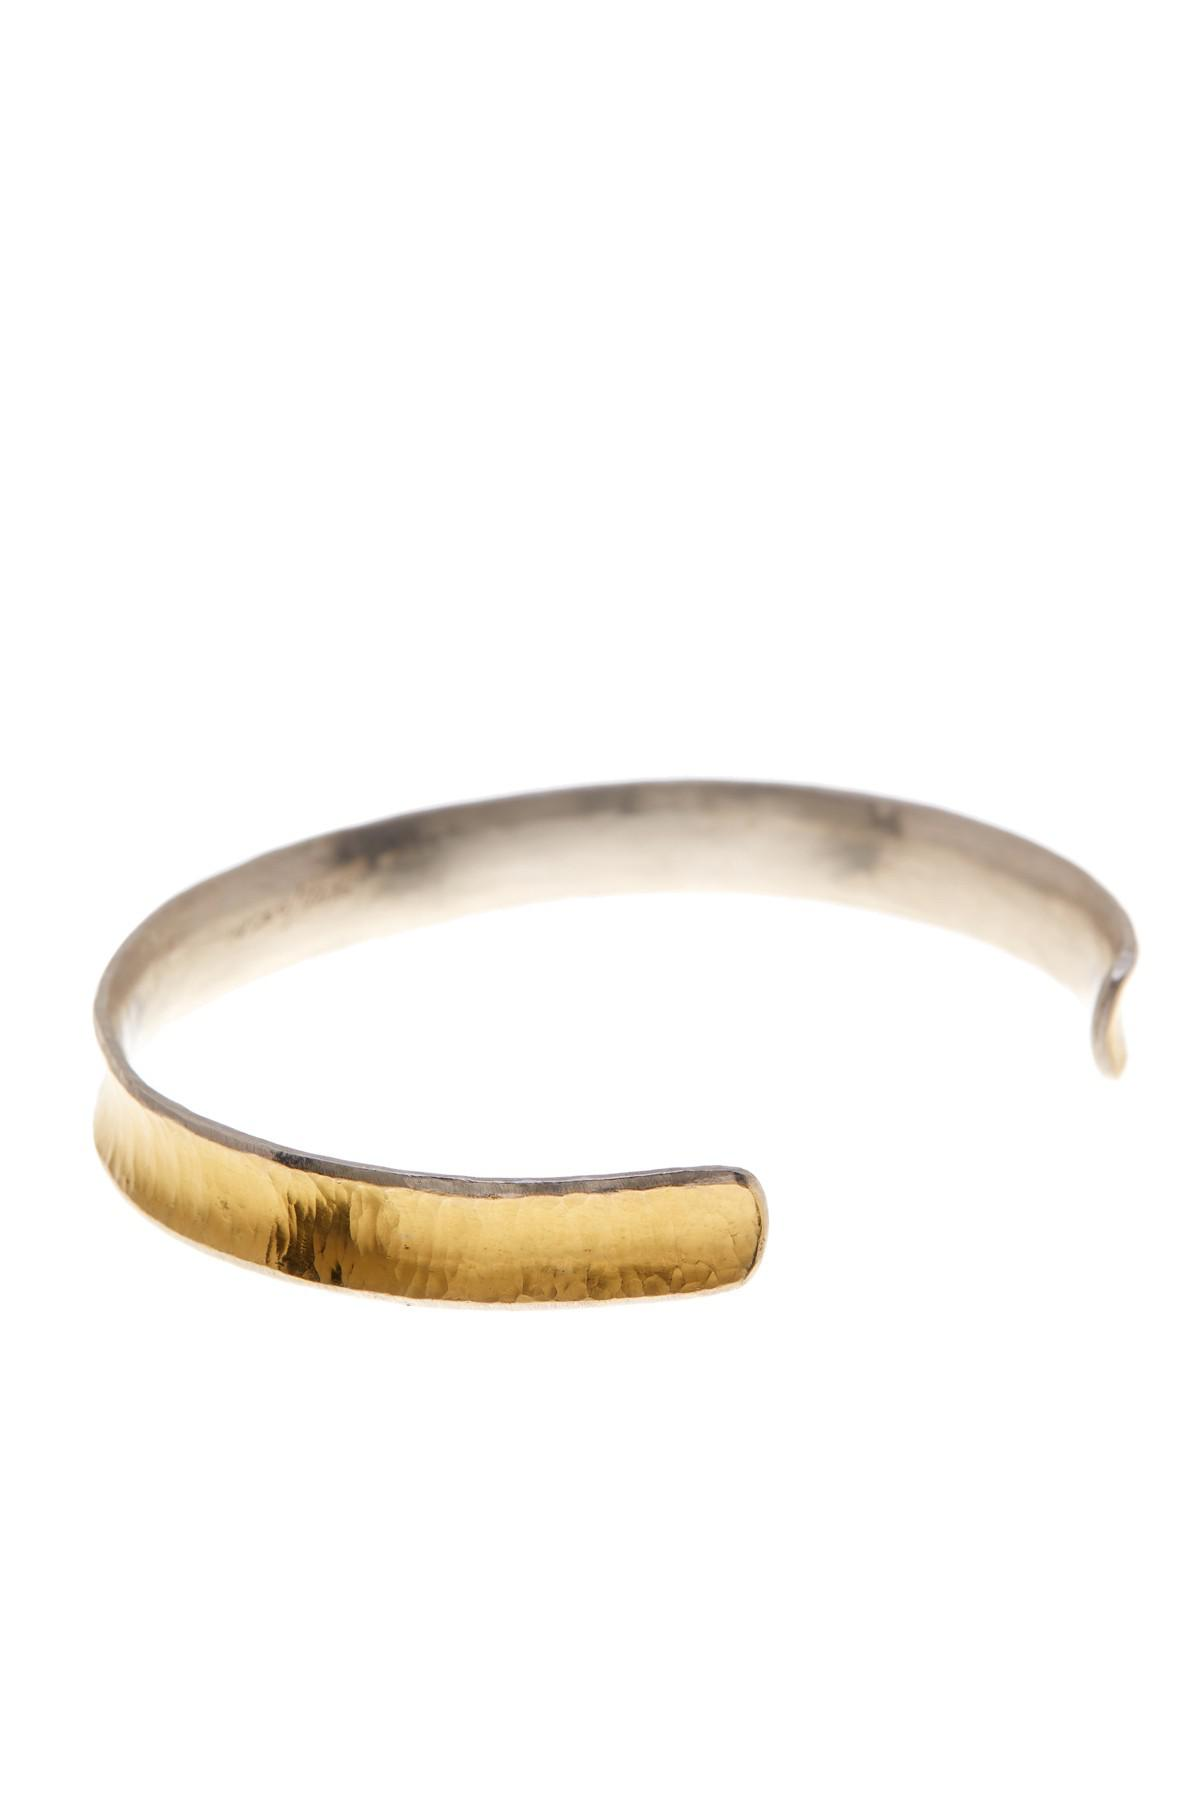 Gurhan Large Hourglass Hammered Cuff in 24K Gold YR4nRBok